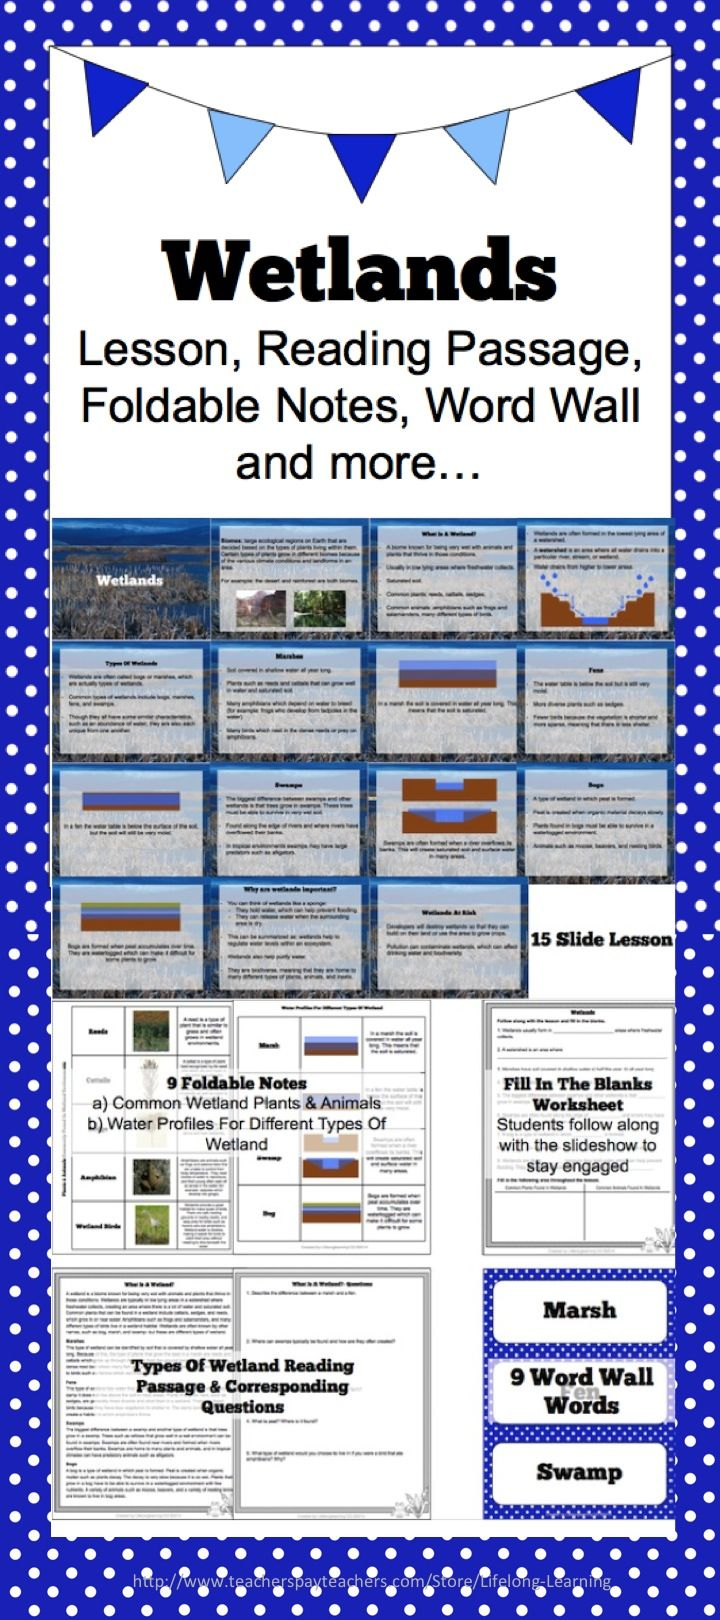 Wetlands: Lesson, Reading Passage, Foldable Notes, Word Wall & more ...